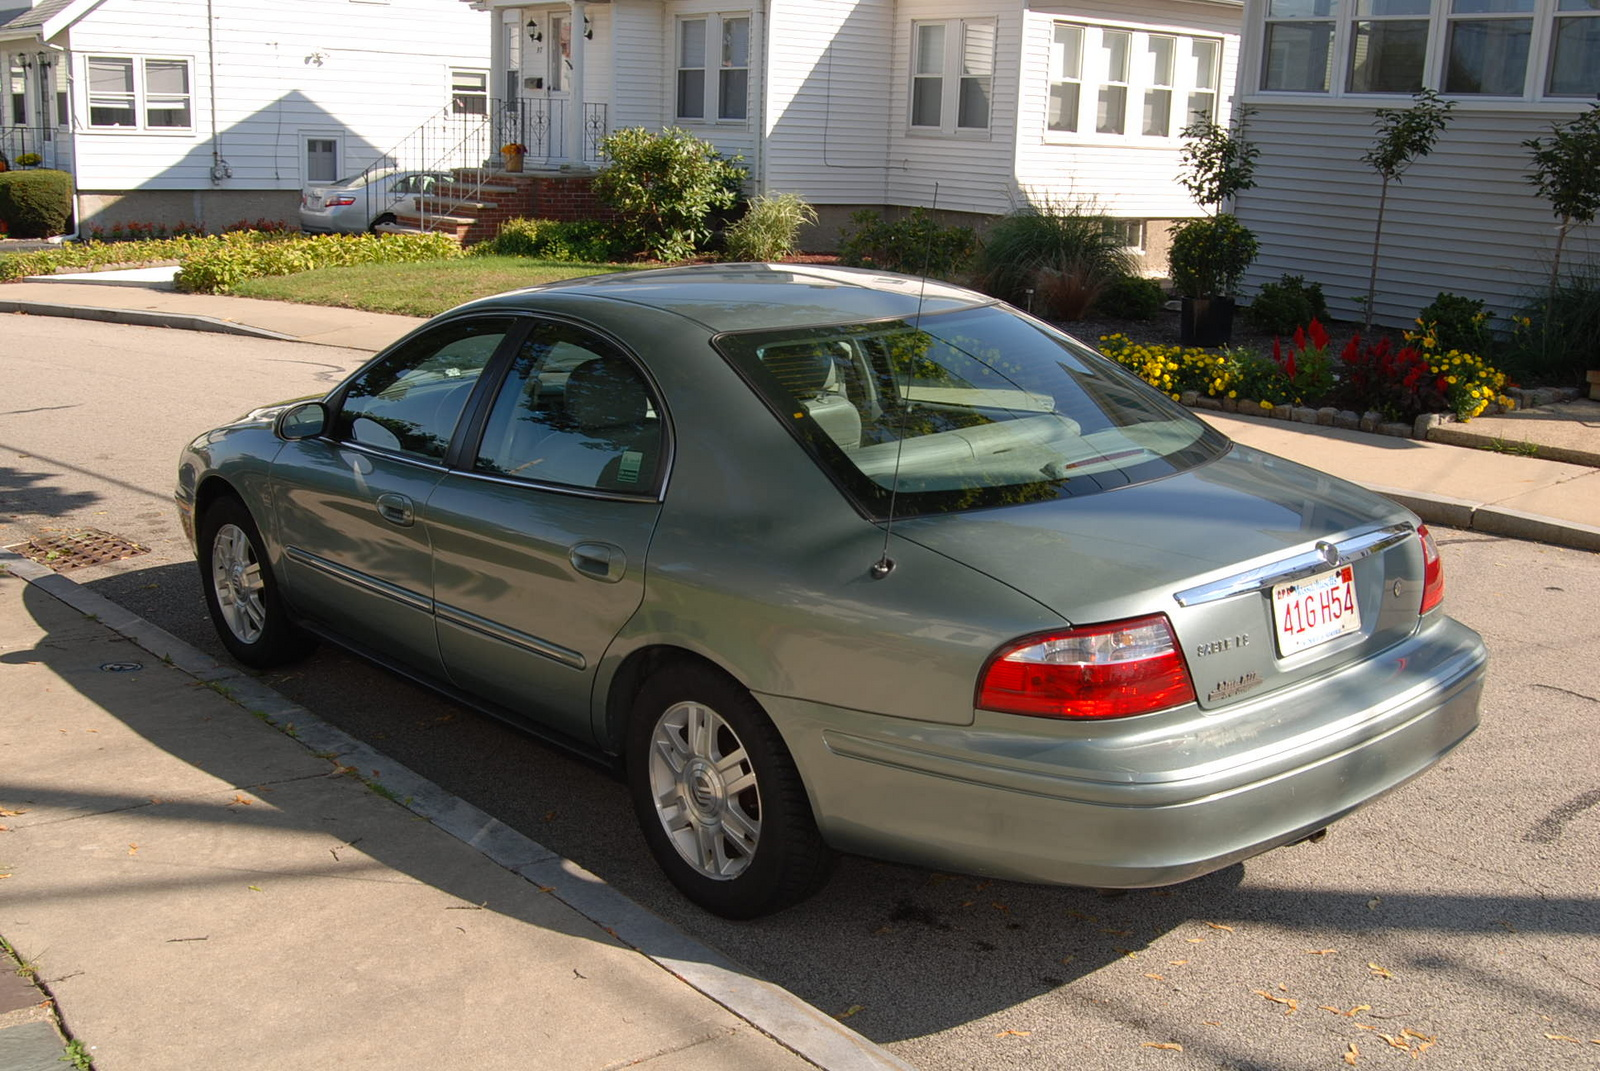 Mercury Sable #21